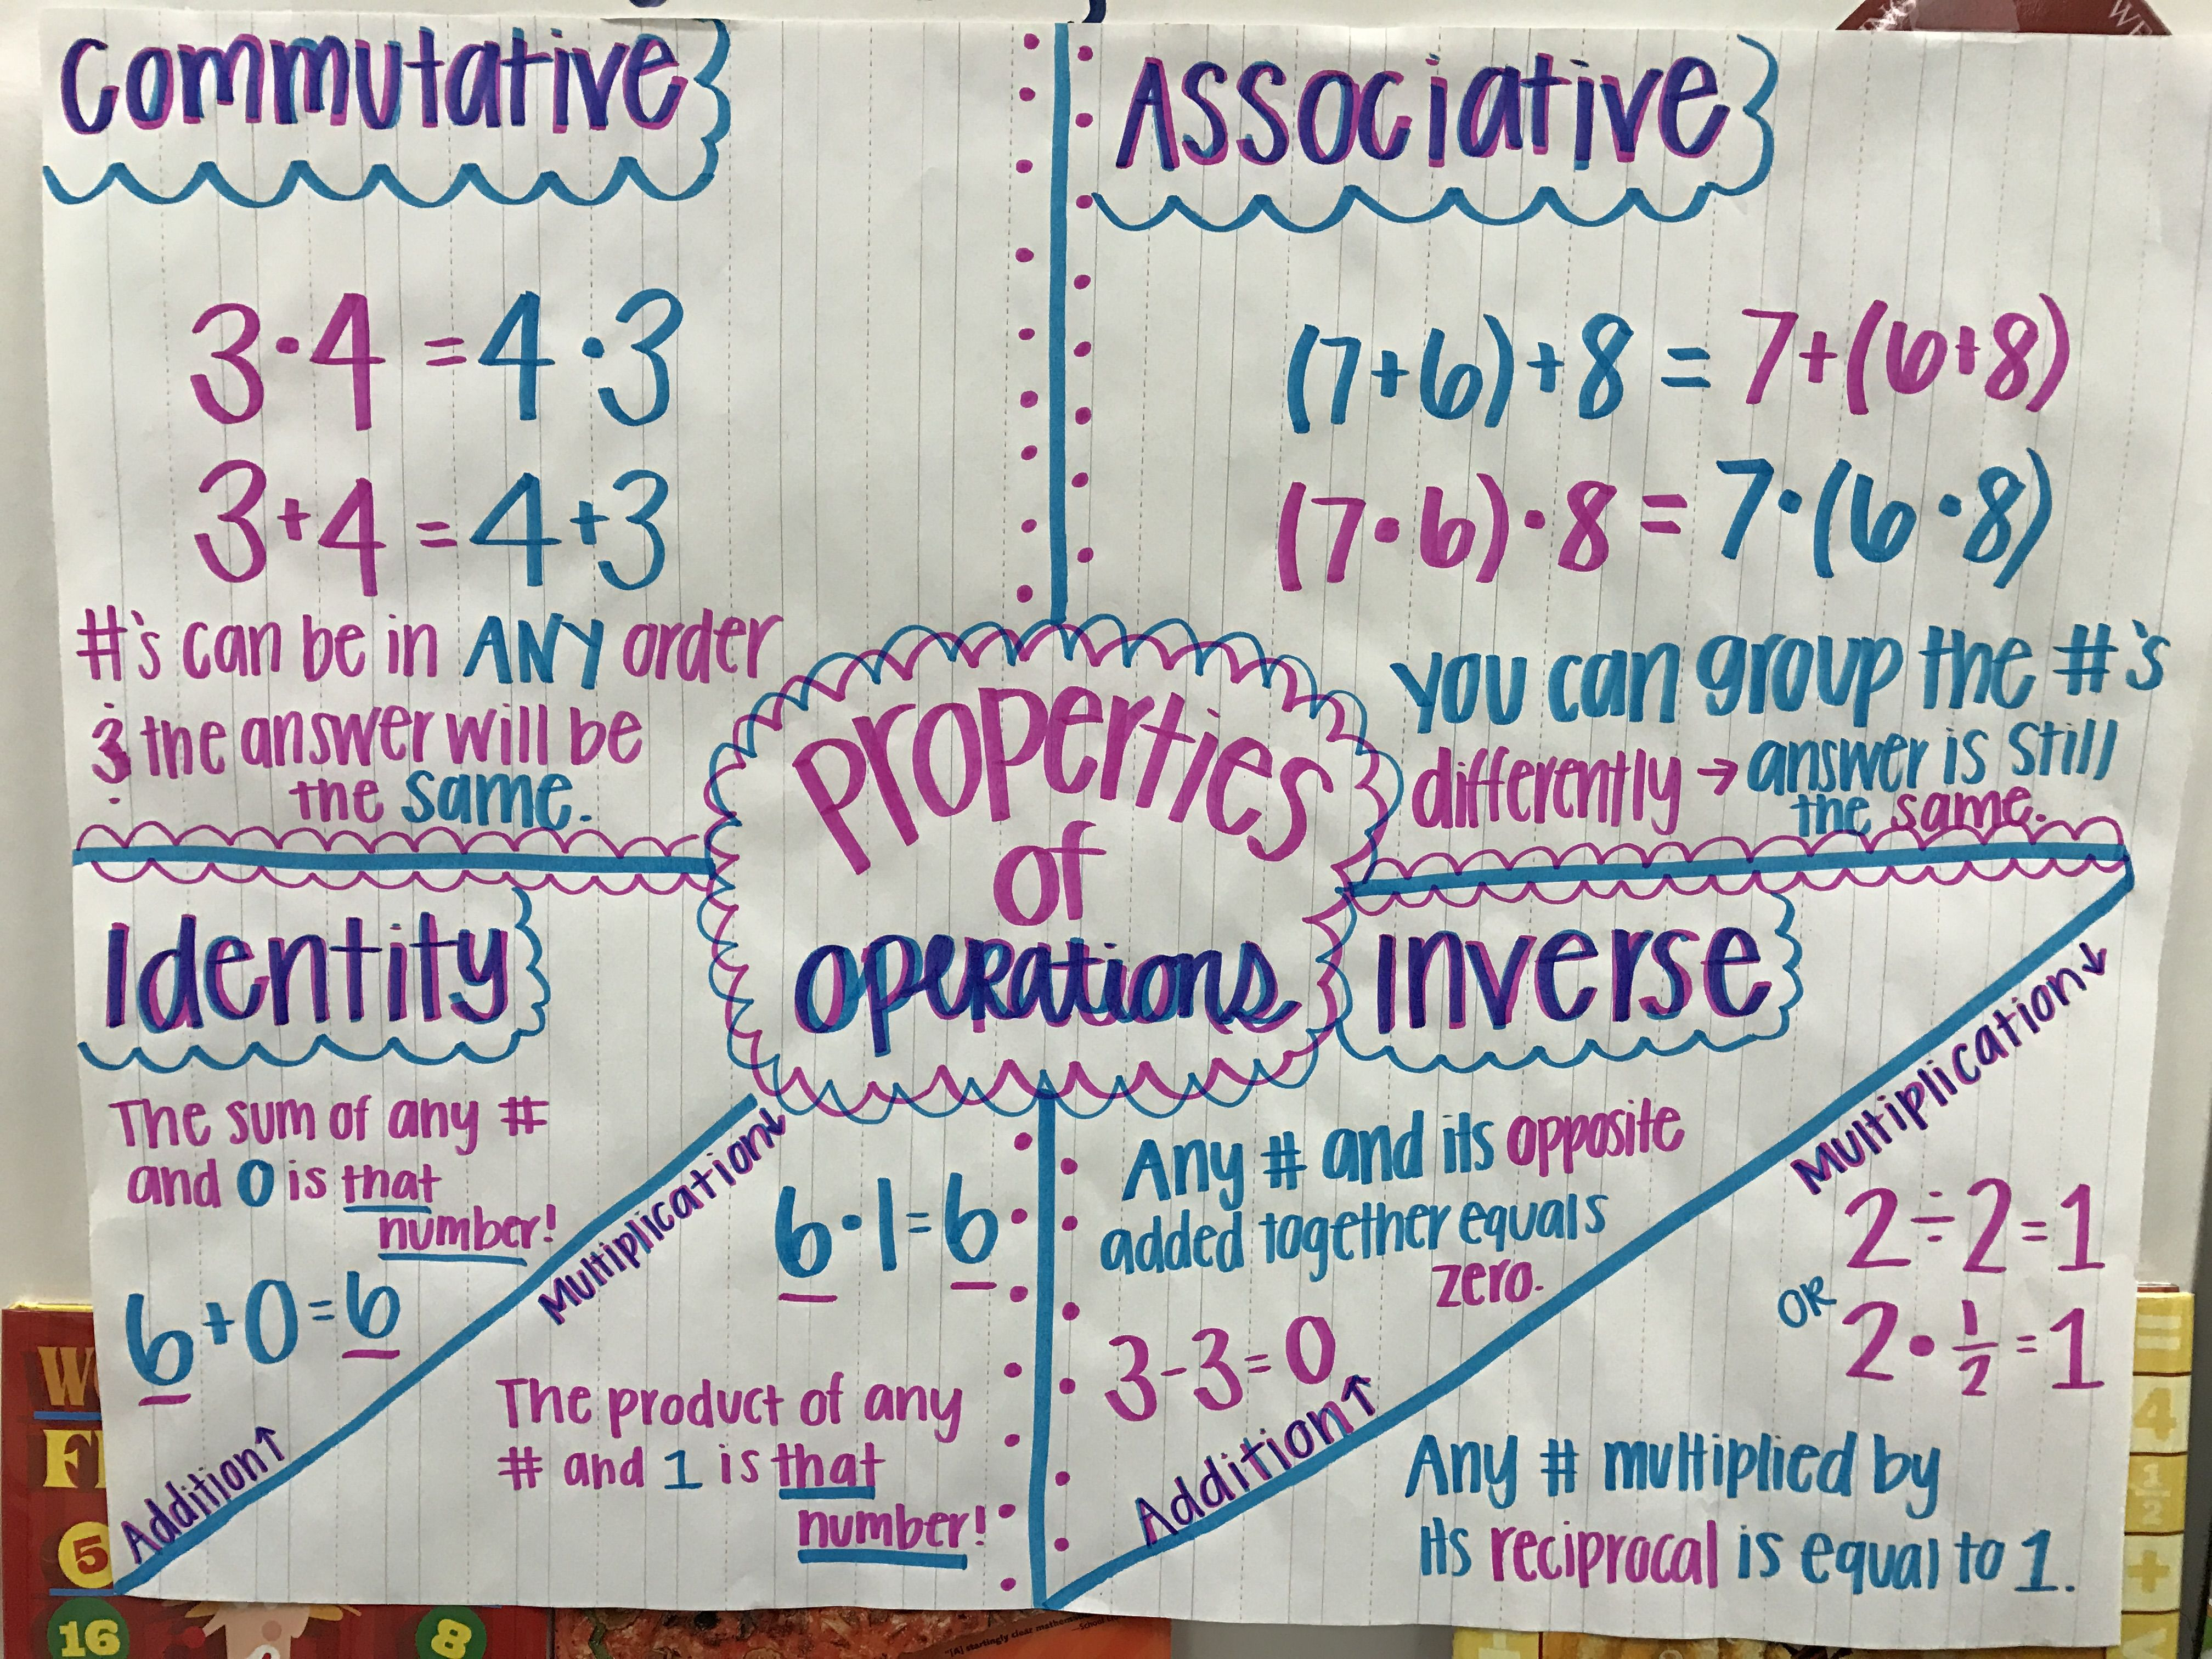 worksheet Properties In Math best 25 math properties ideas on pinterest of operations associative property inverse commutative addition multiplication